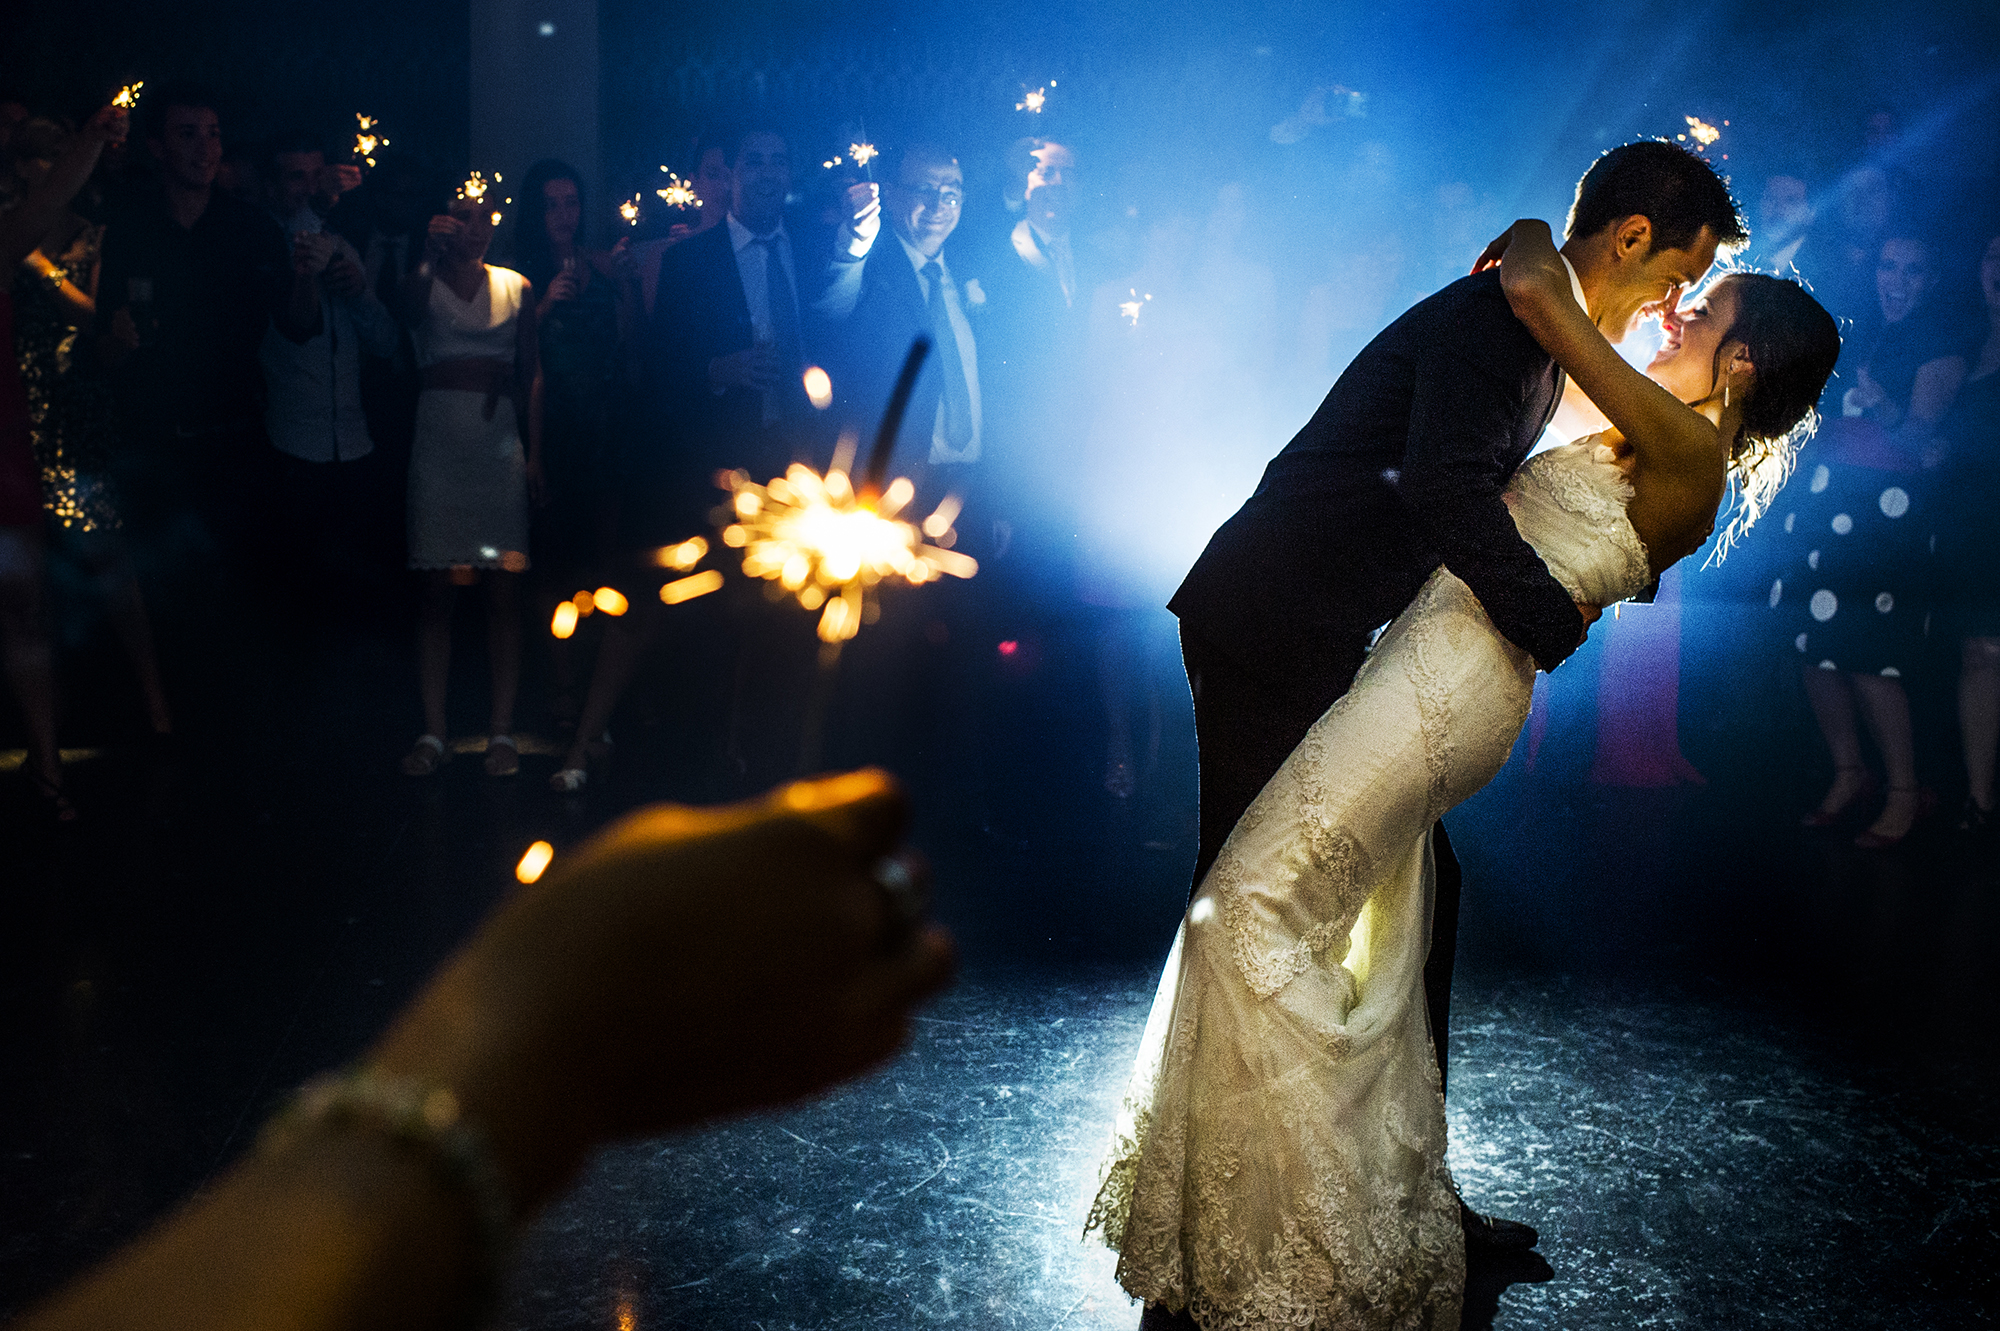 Couple surrounded by sparklers - photo by Victor Lax